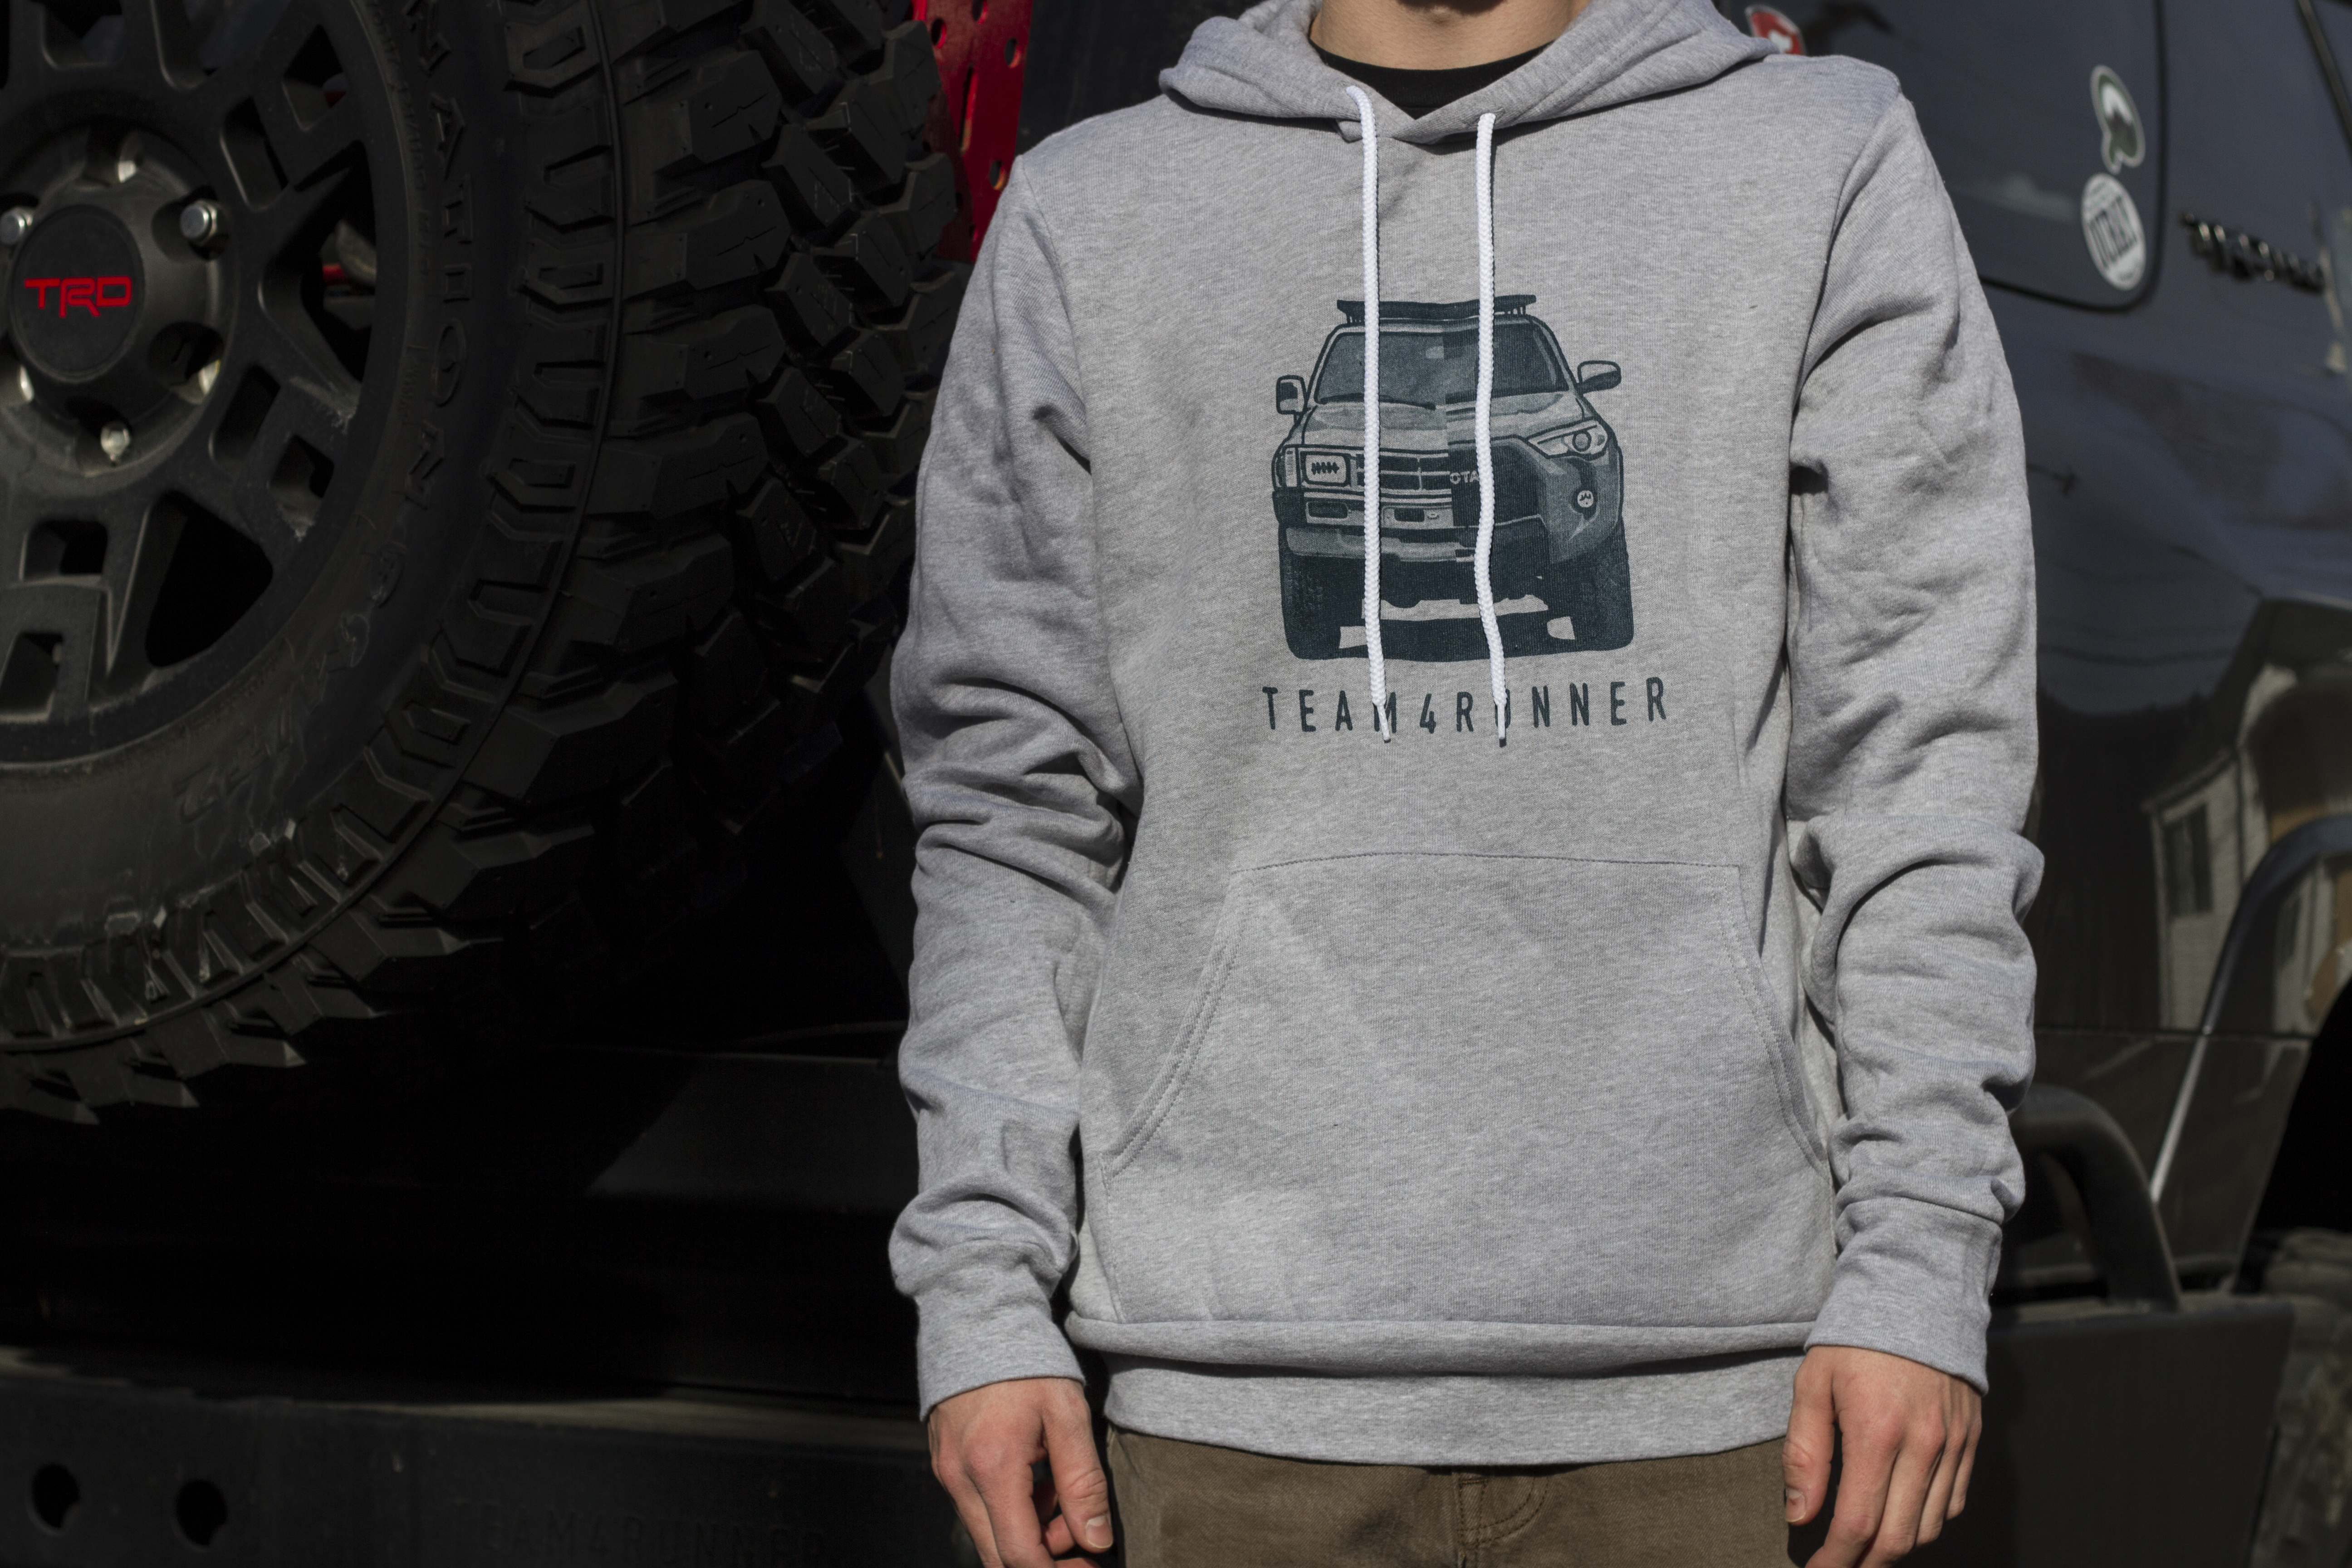 sweatshirt-team4runner